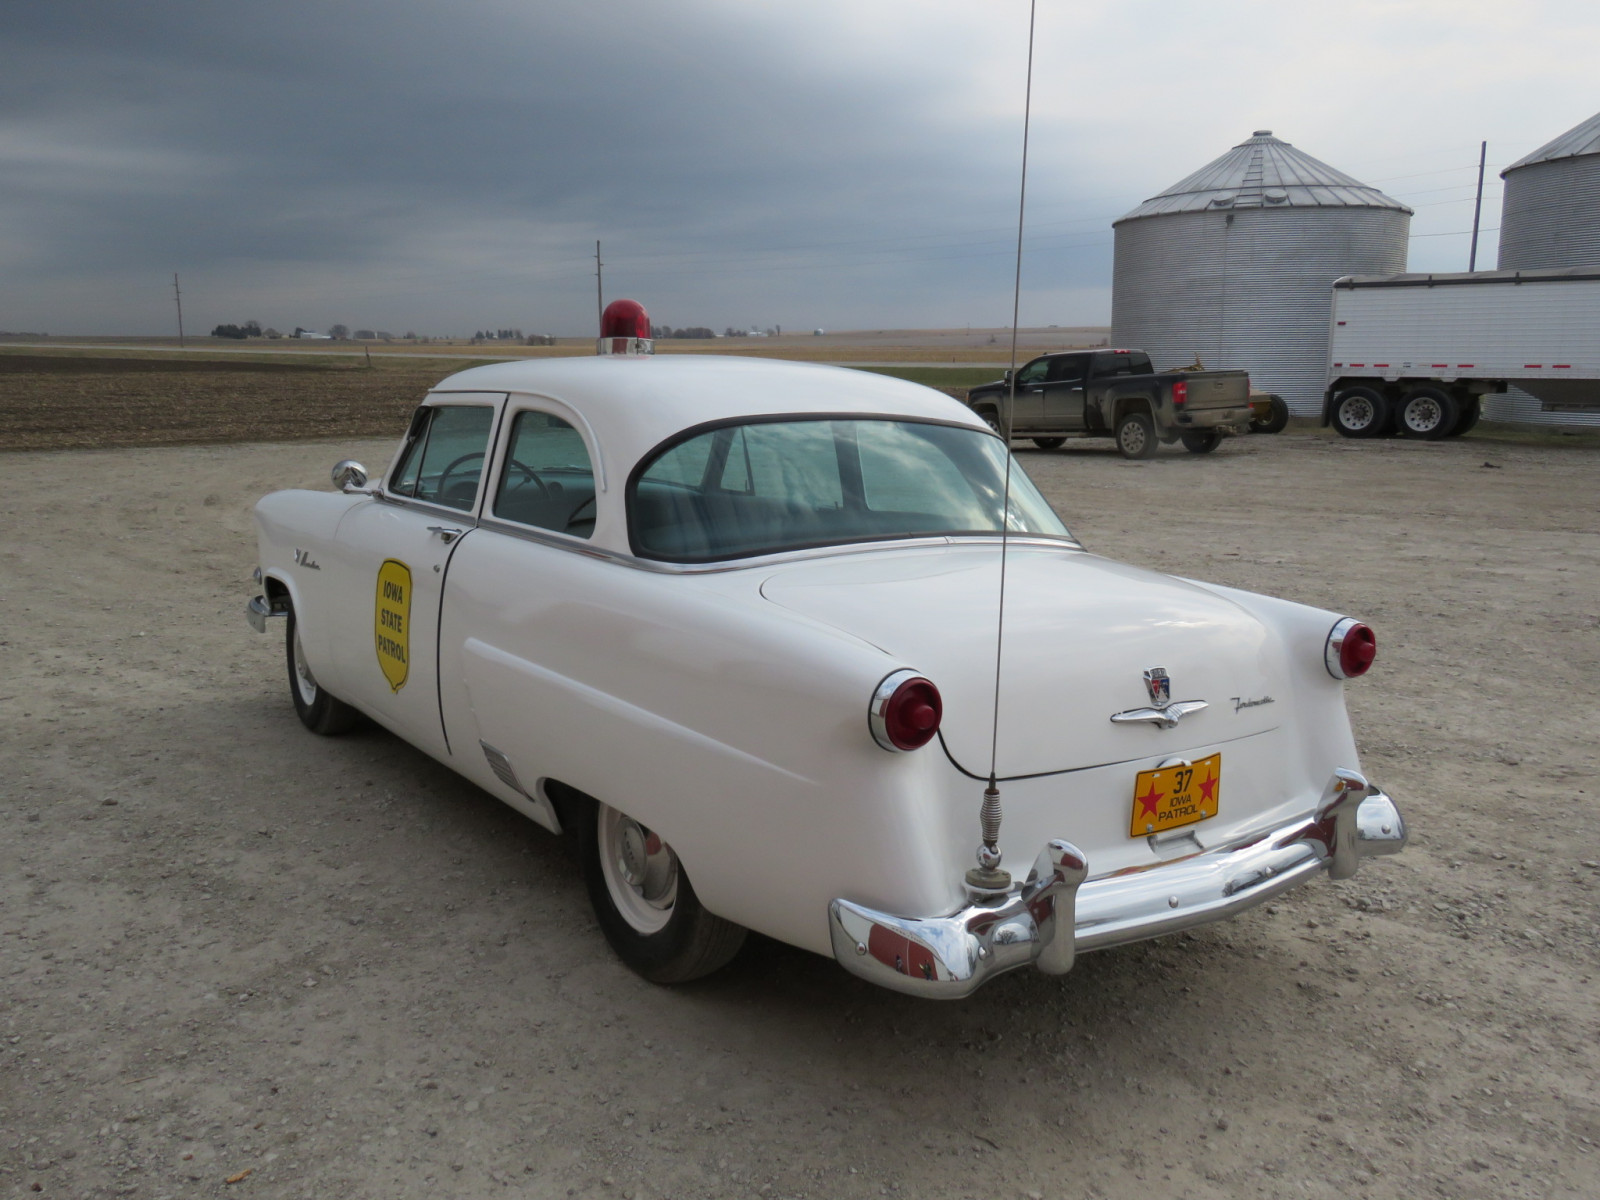 1953 Ford Mainline Iowa Patrol Car - Image 4